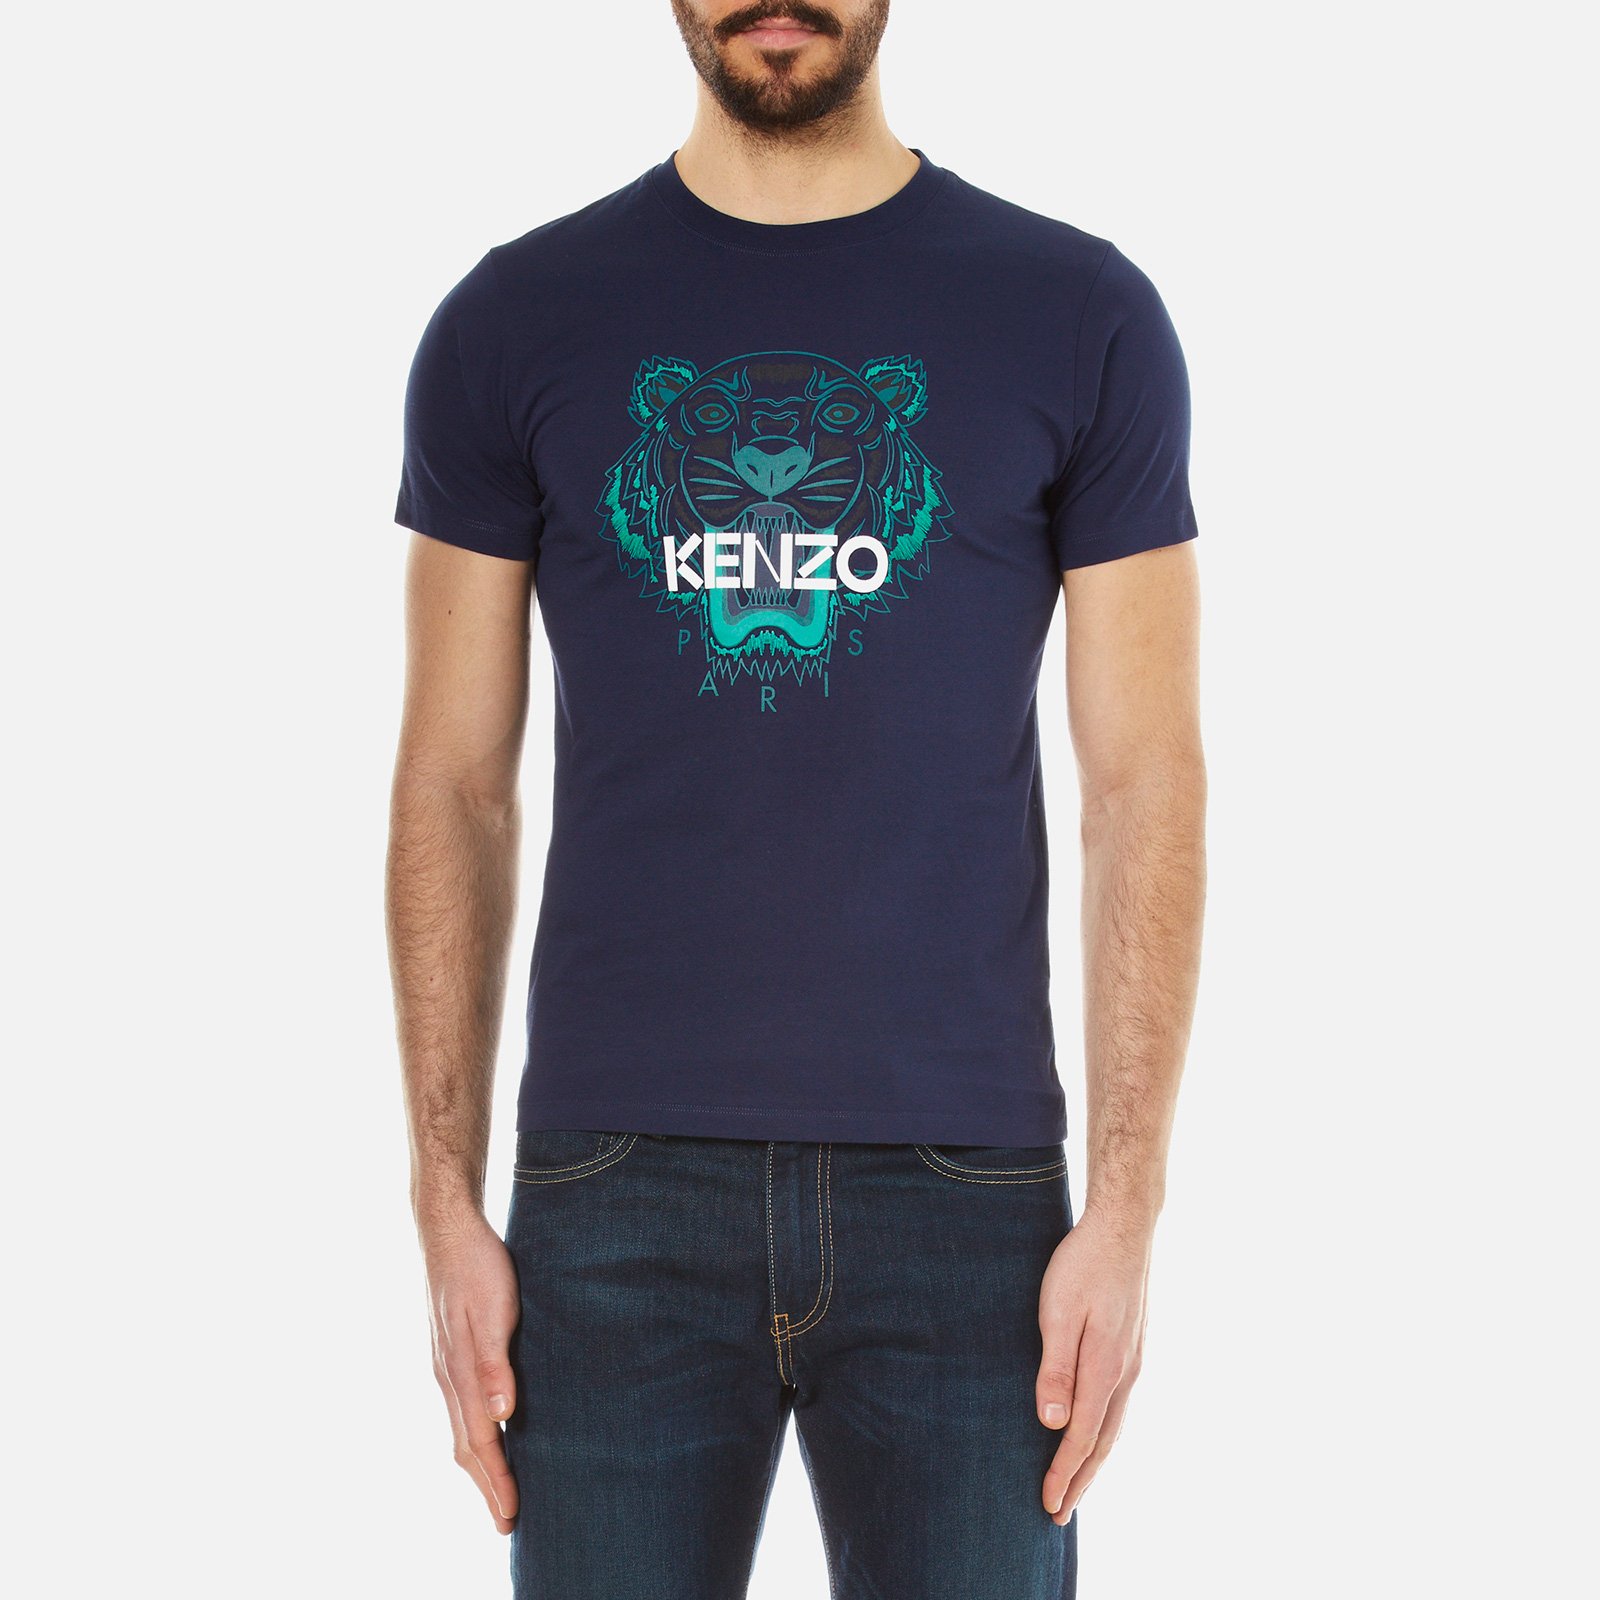 af636625ca33 KENZO Men's Printed Tiger T-Shirt - Navy - Free UK Delivery over £50